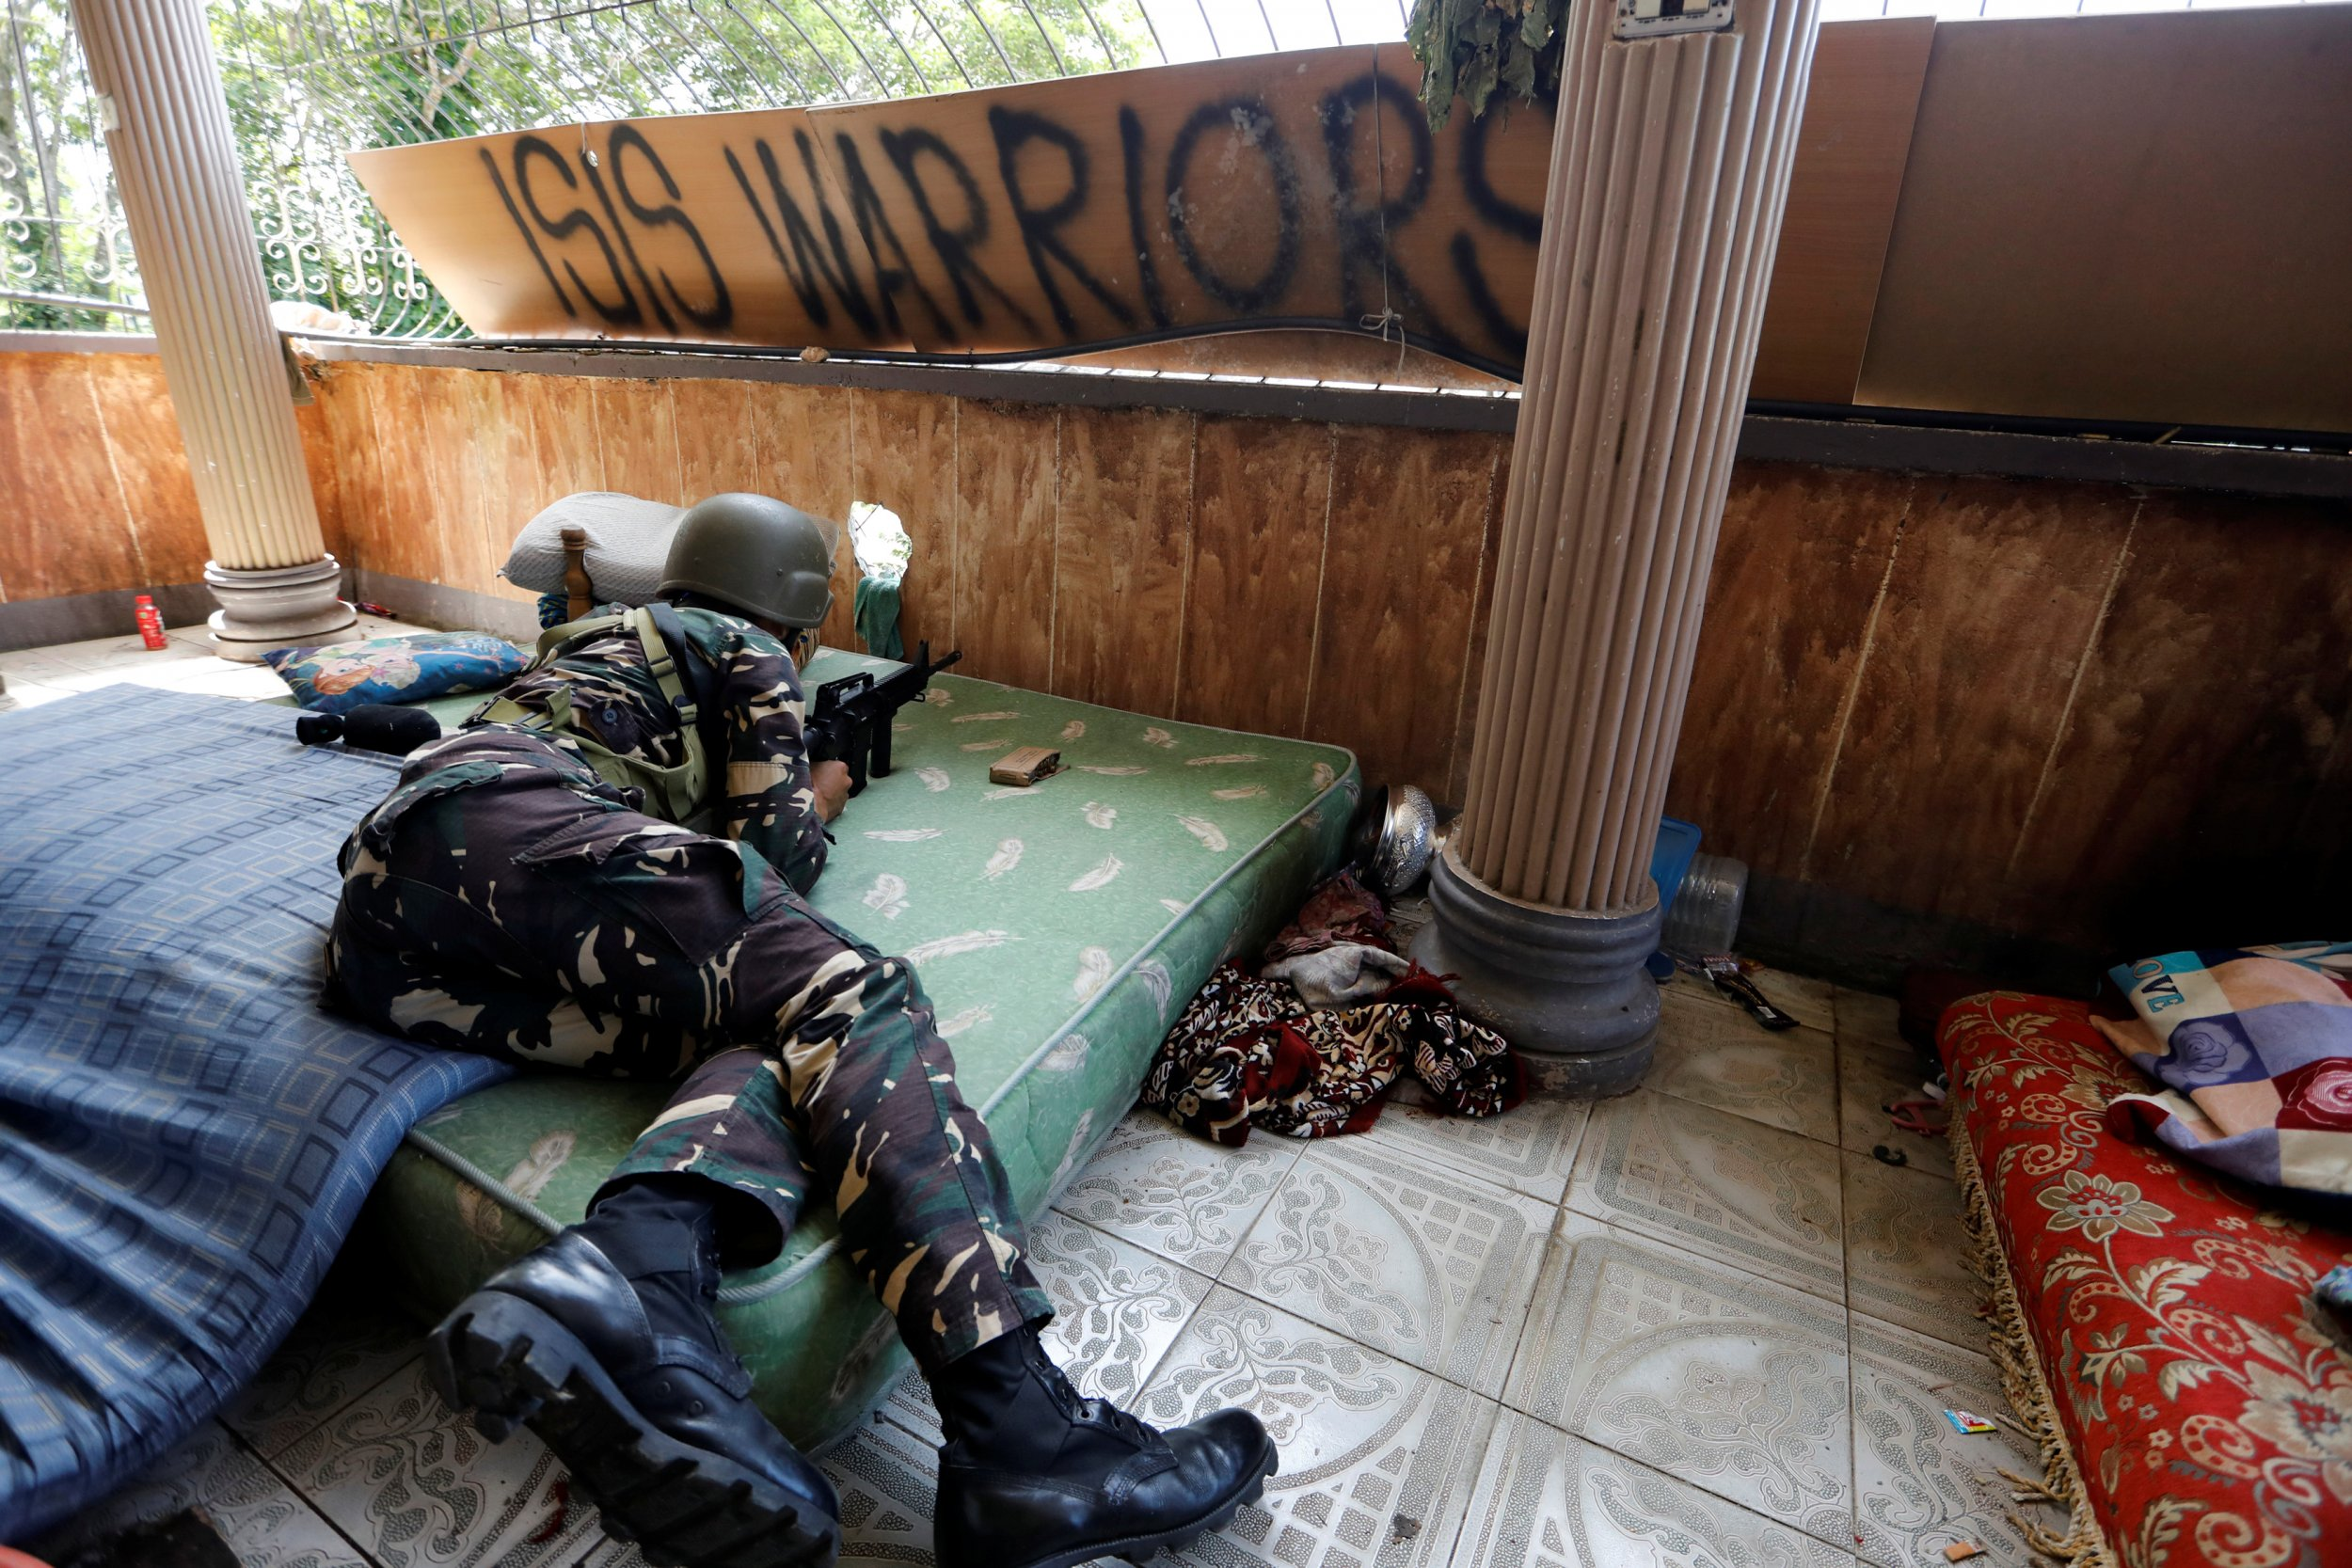 ISIS leaders in Syria funded Philippine militants ahead of city takeover